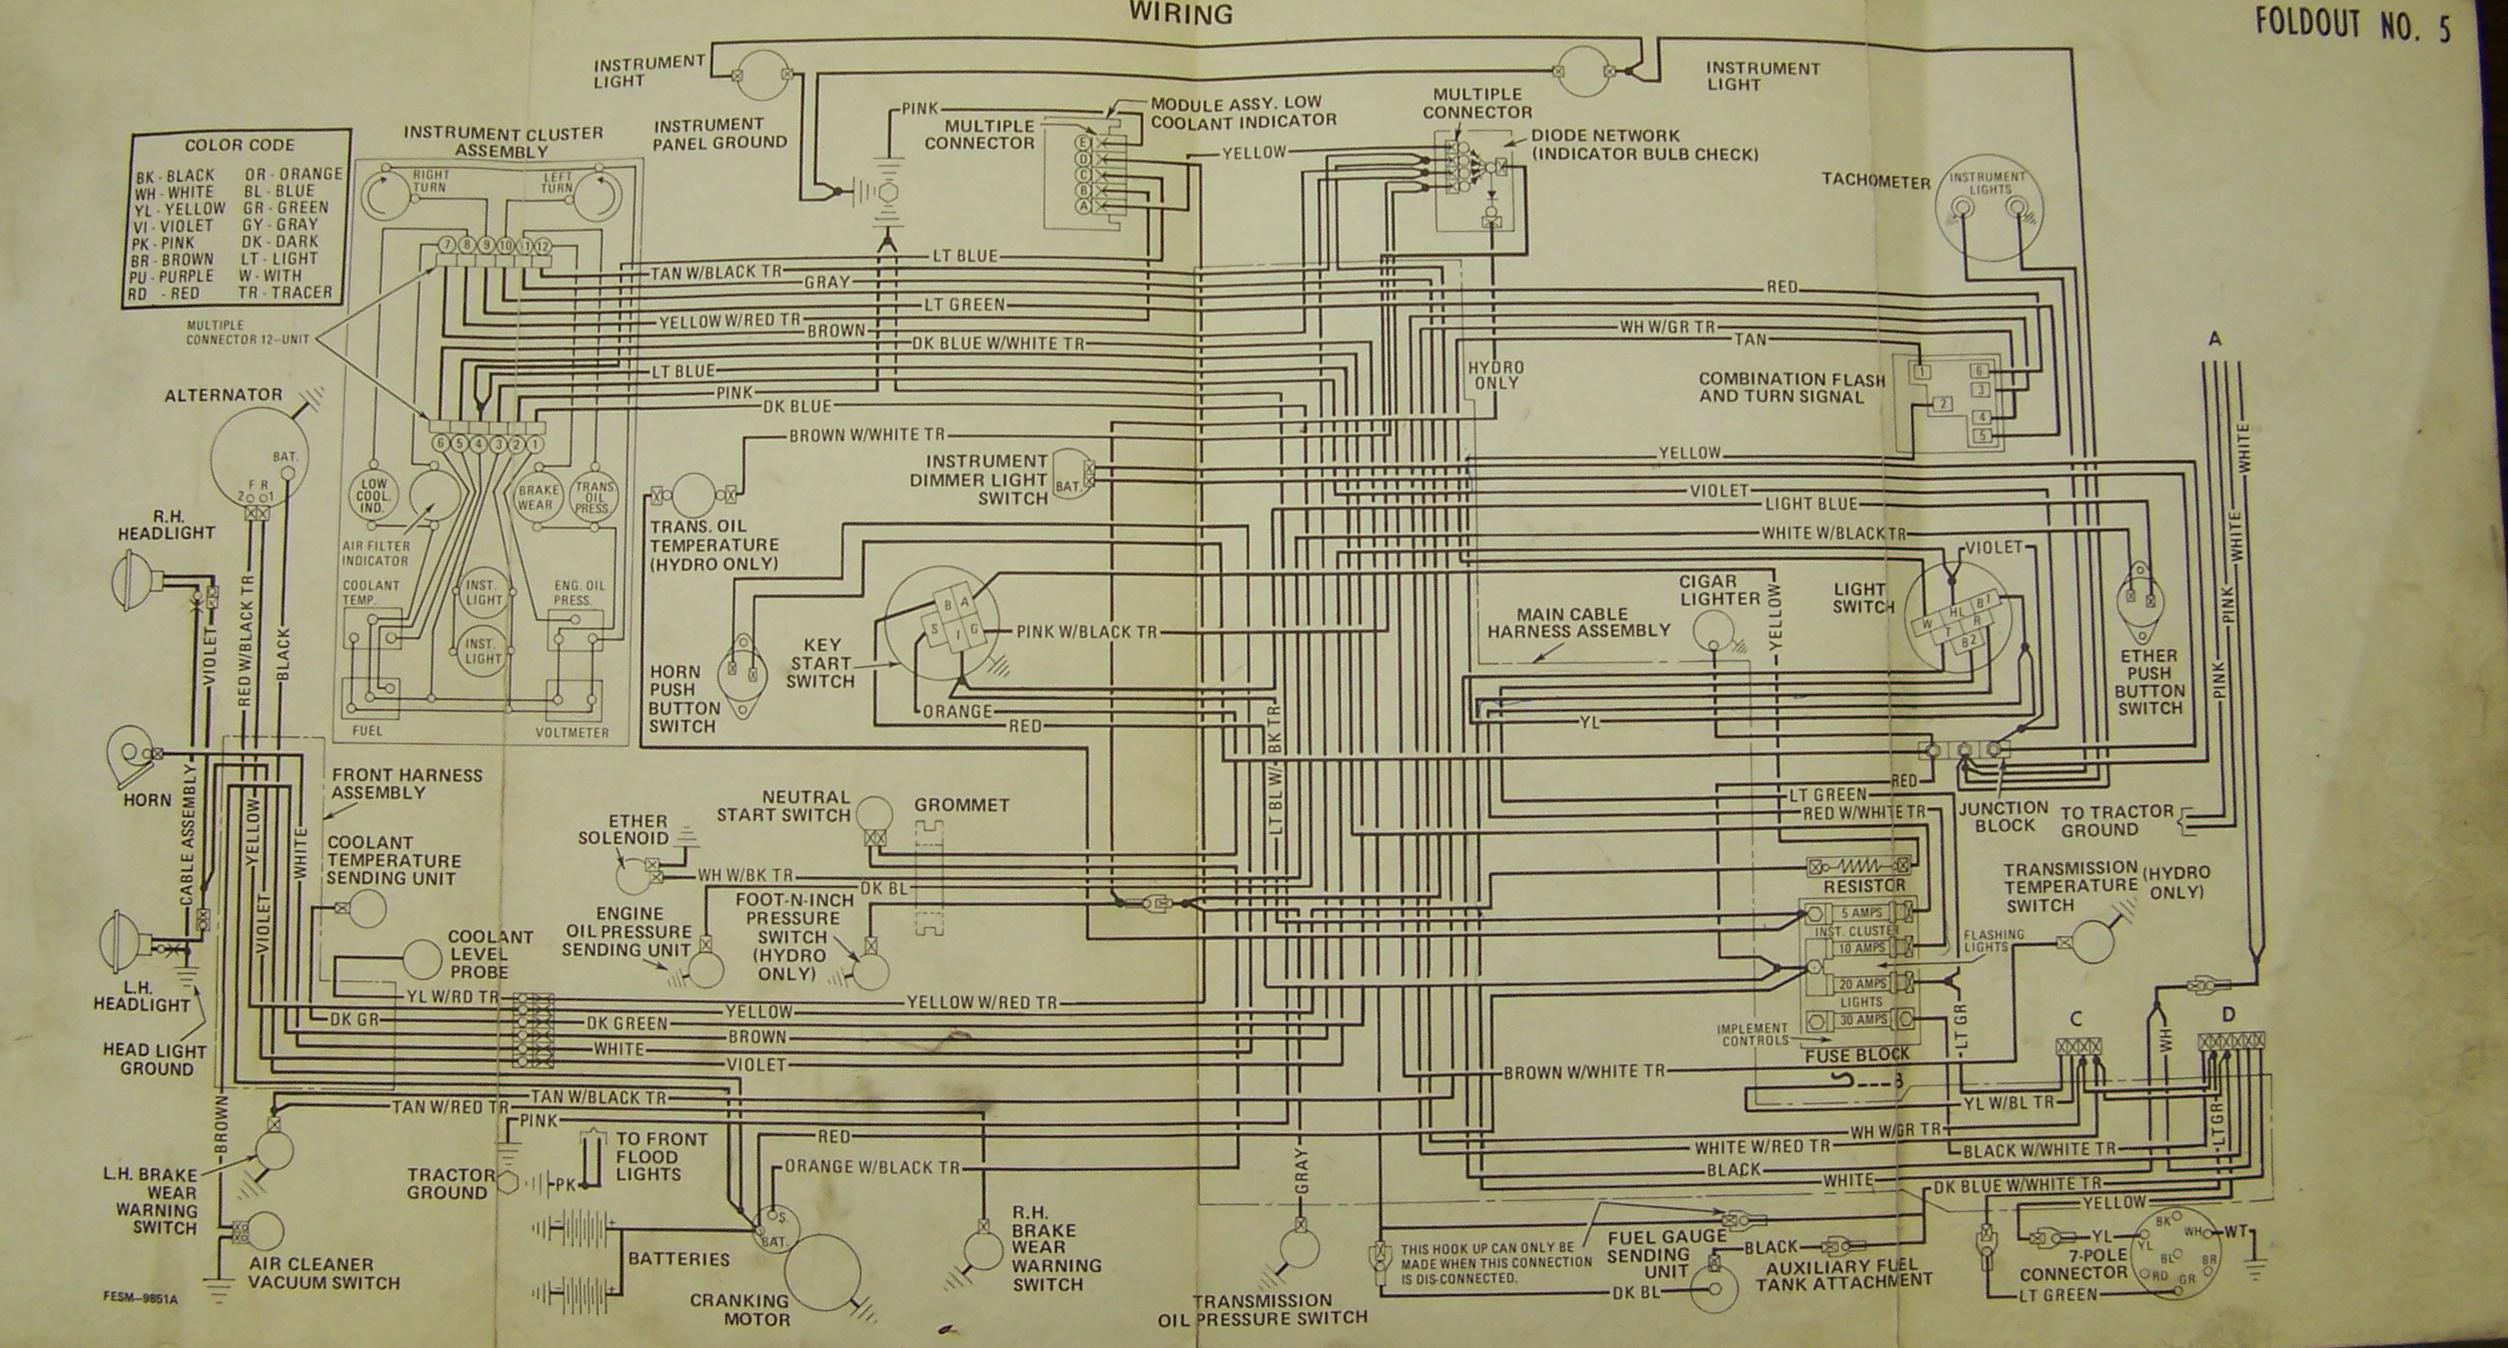 86series5 ih 574 wiring diagram case 430 tractor wiring diagram \u2022 wiring wiring harness case 195 garden tractor at gsmx.co